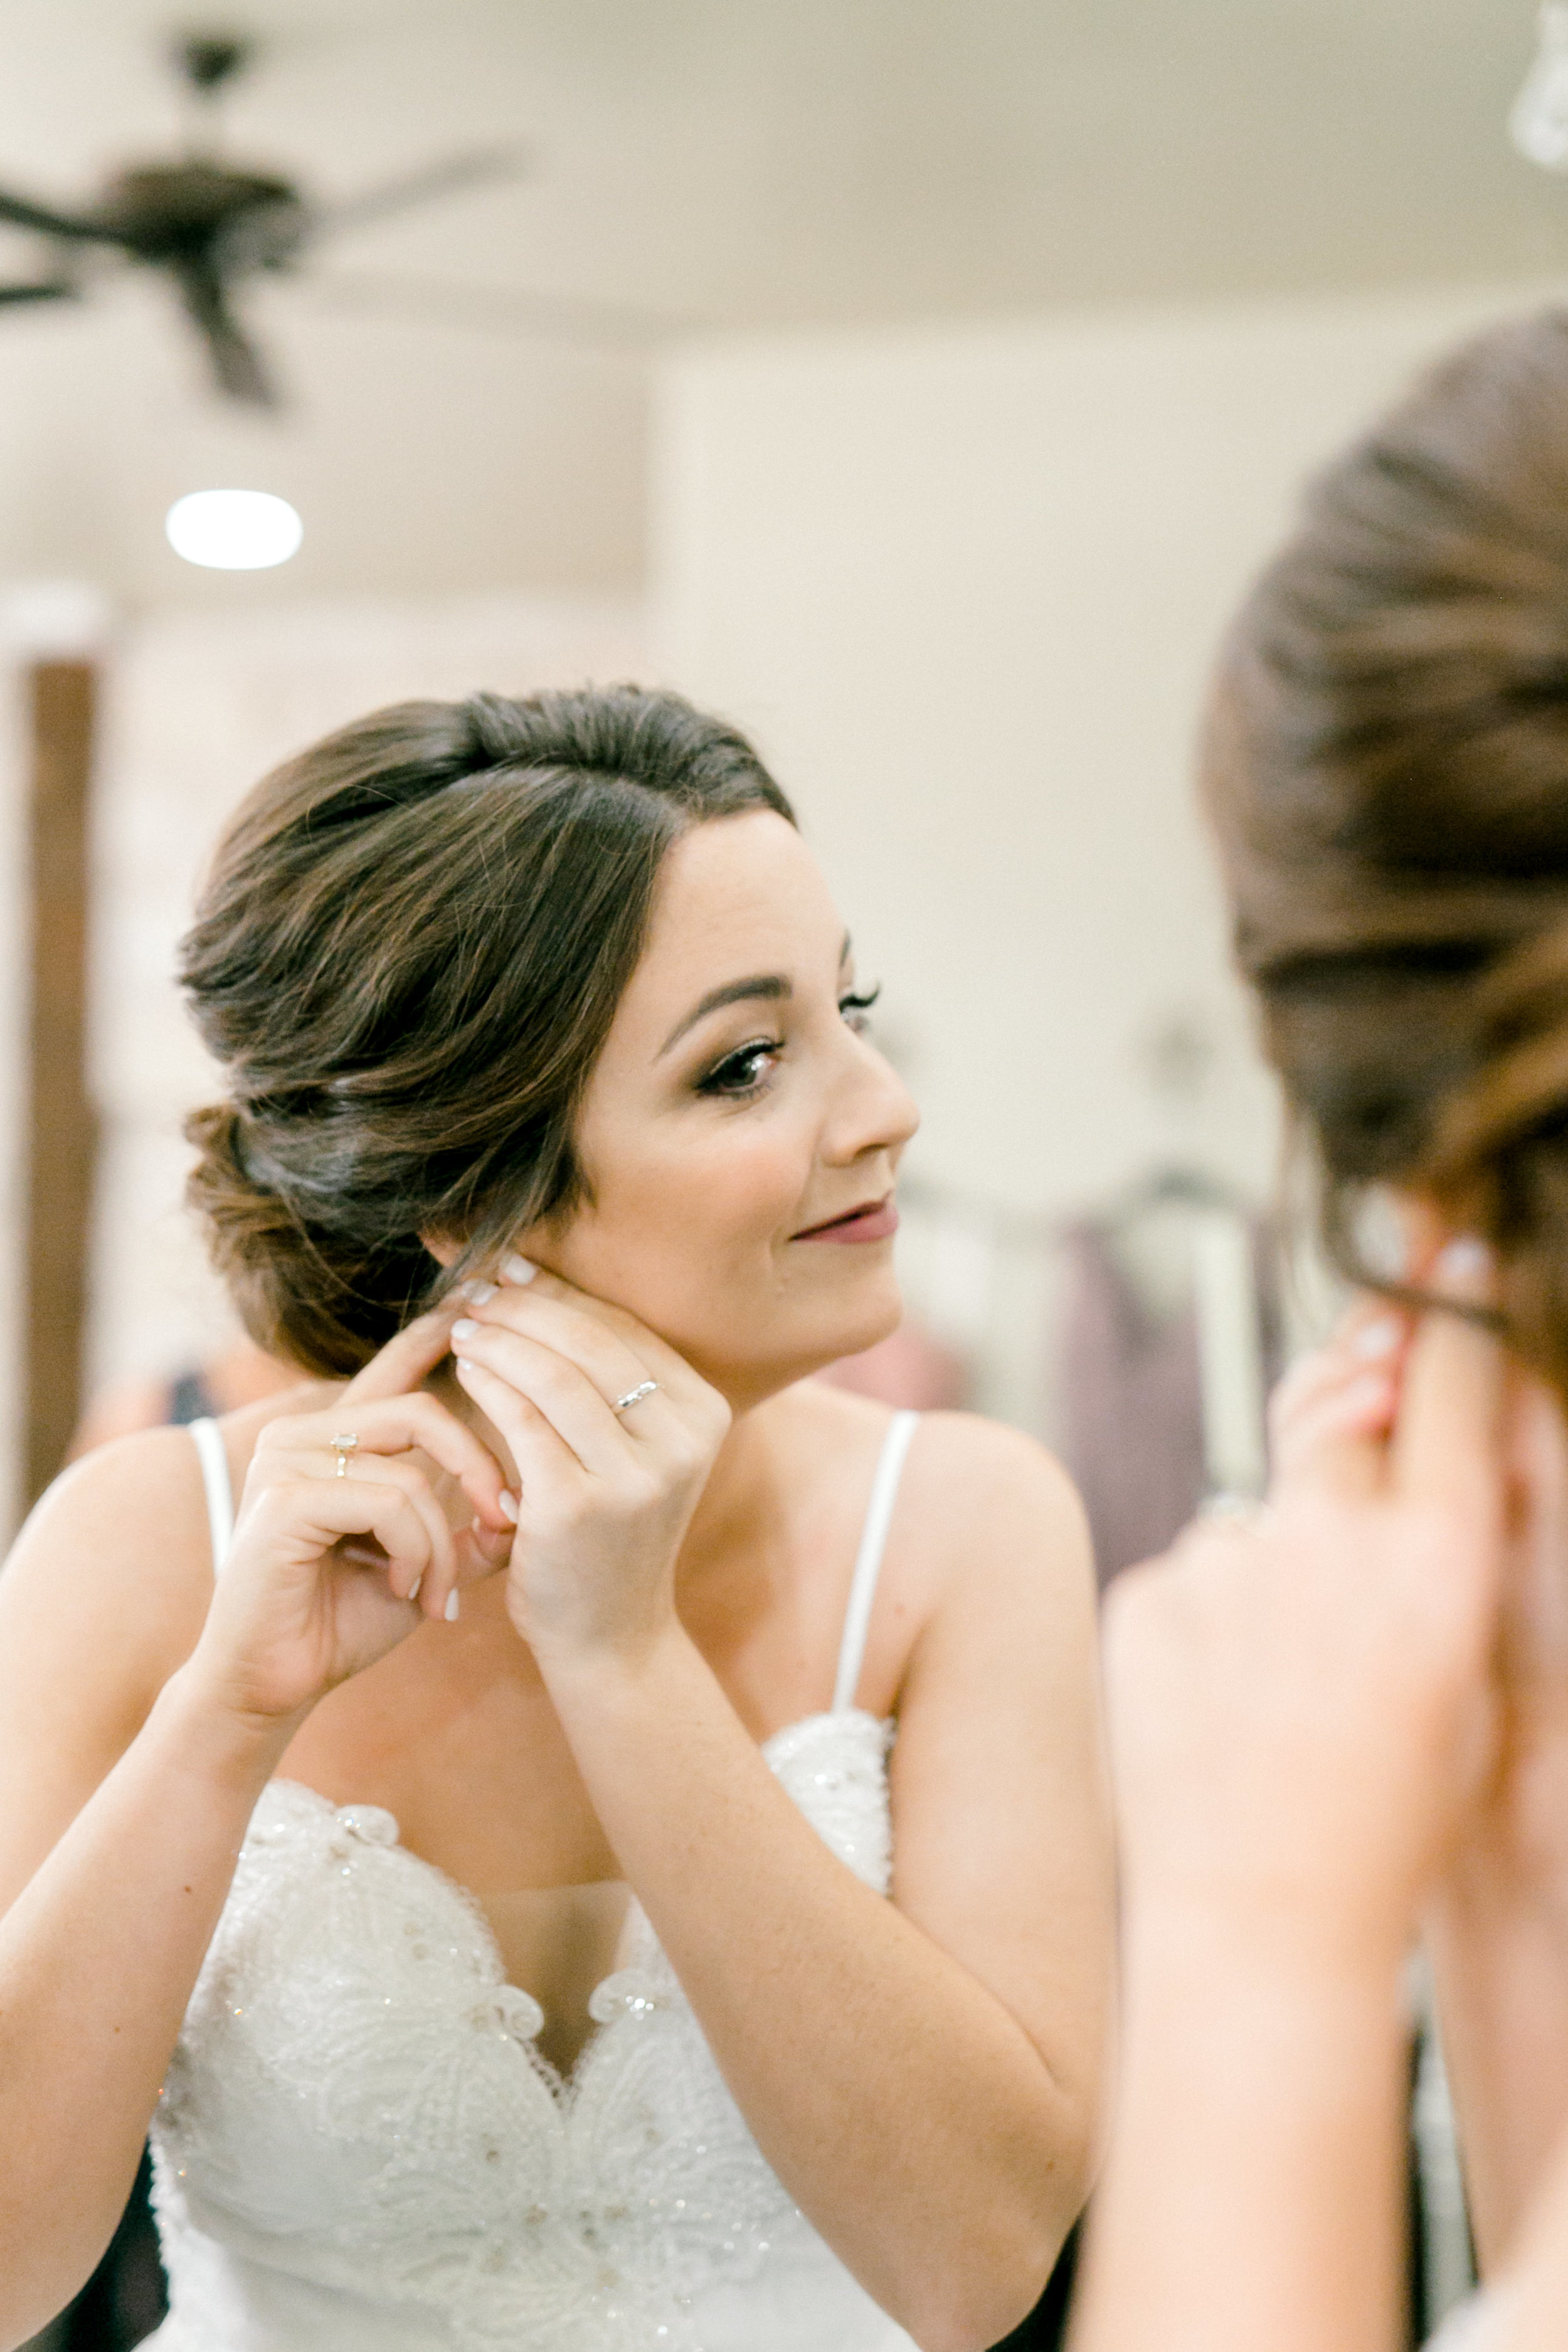 Natalie-and-Trent-Wedding-Day-THE-SPRINGS-EVENT-VENUE-Norman-Oklahoma-by-Emily-Nicole-Photo-109.jpg